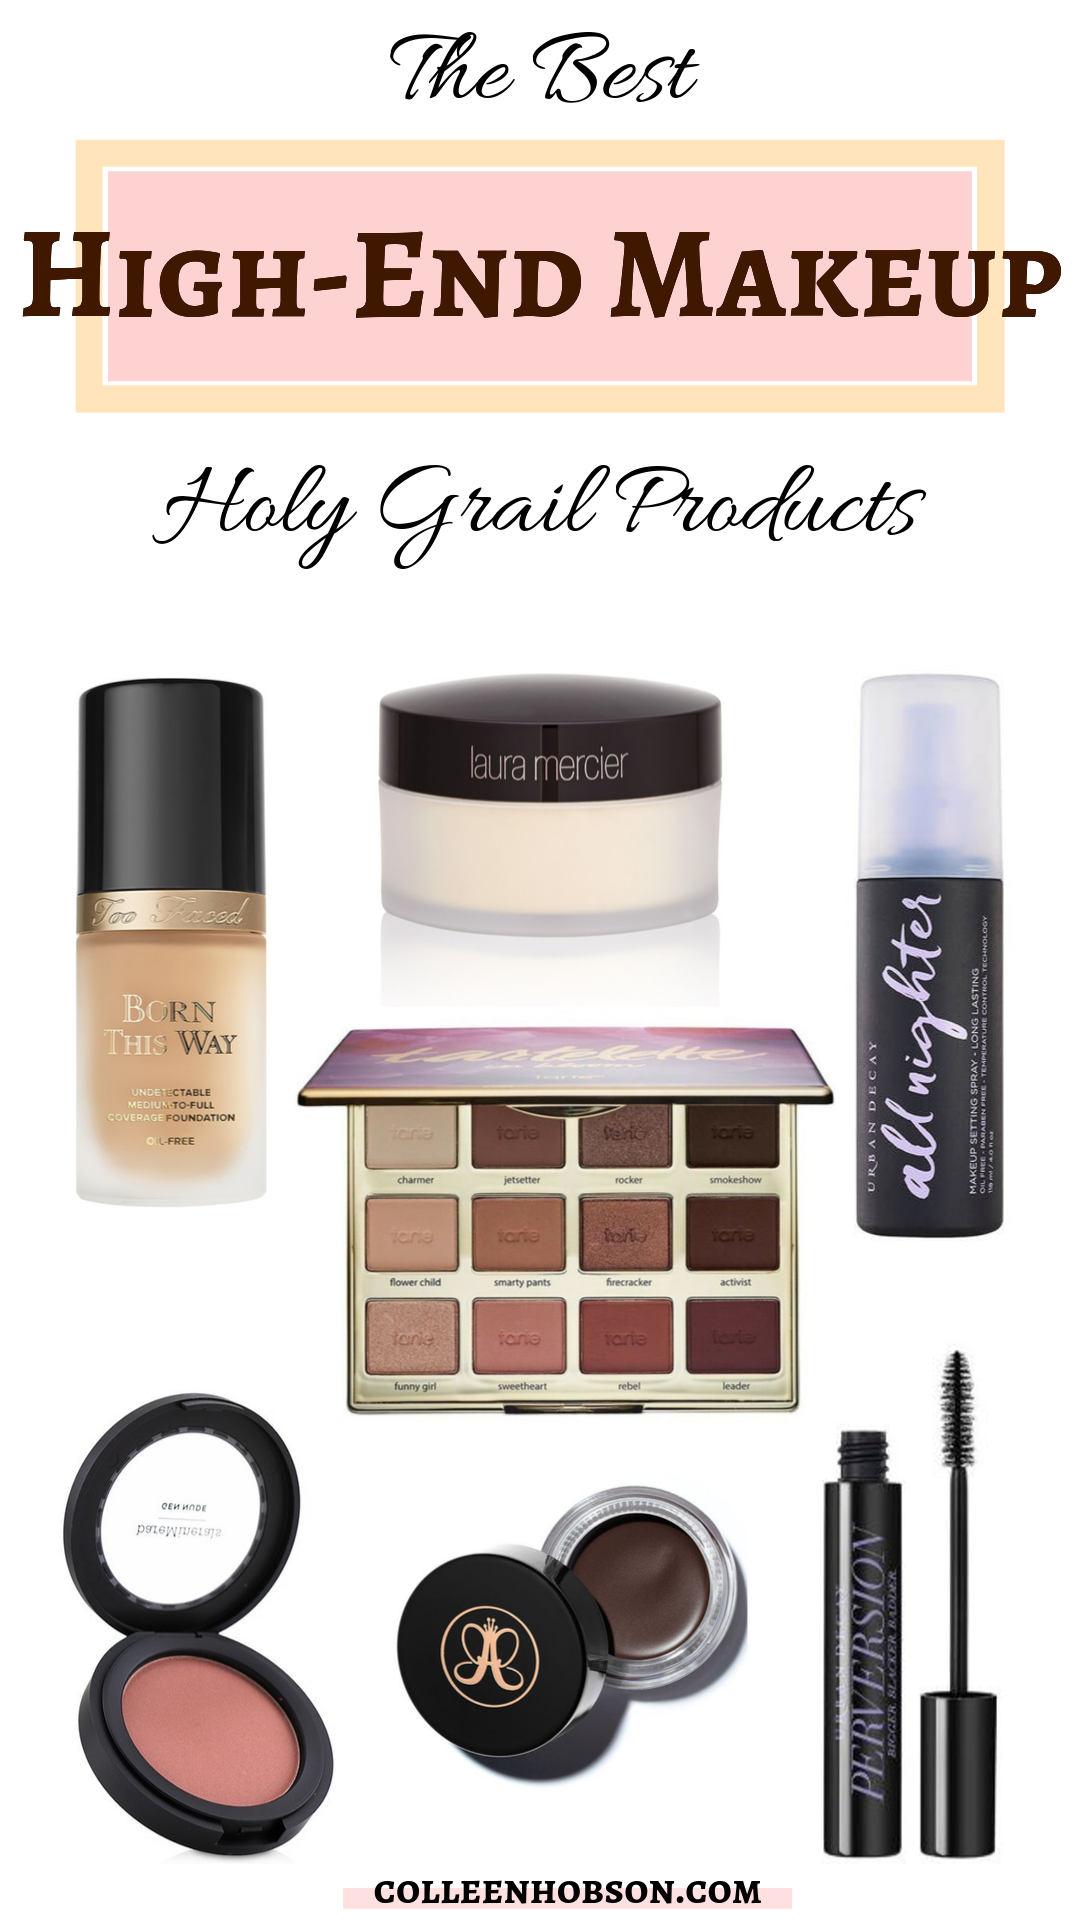 The Best High End Makeup Holy Grail Products Colleen Hobson Best High End Makeup Top Makeup Products High End Makeup